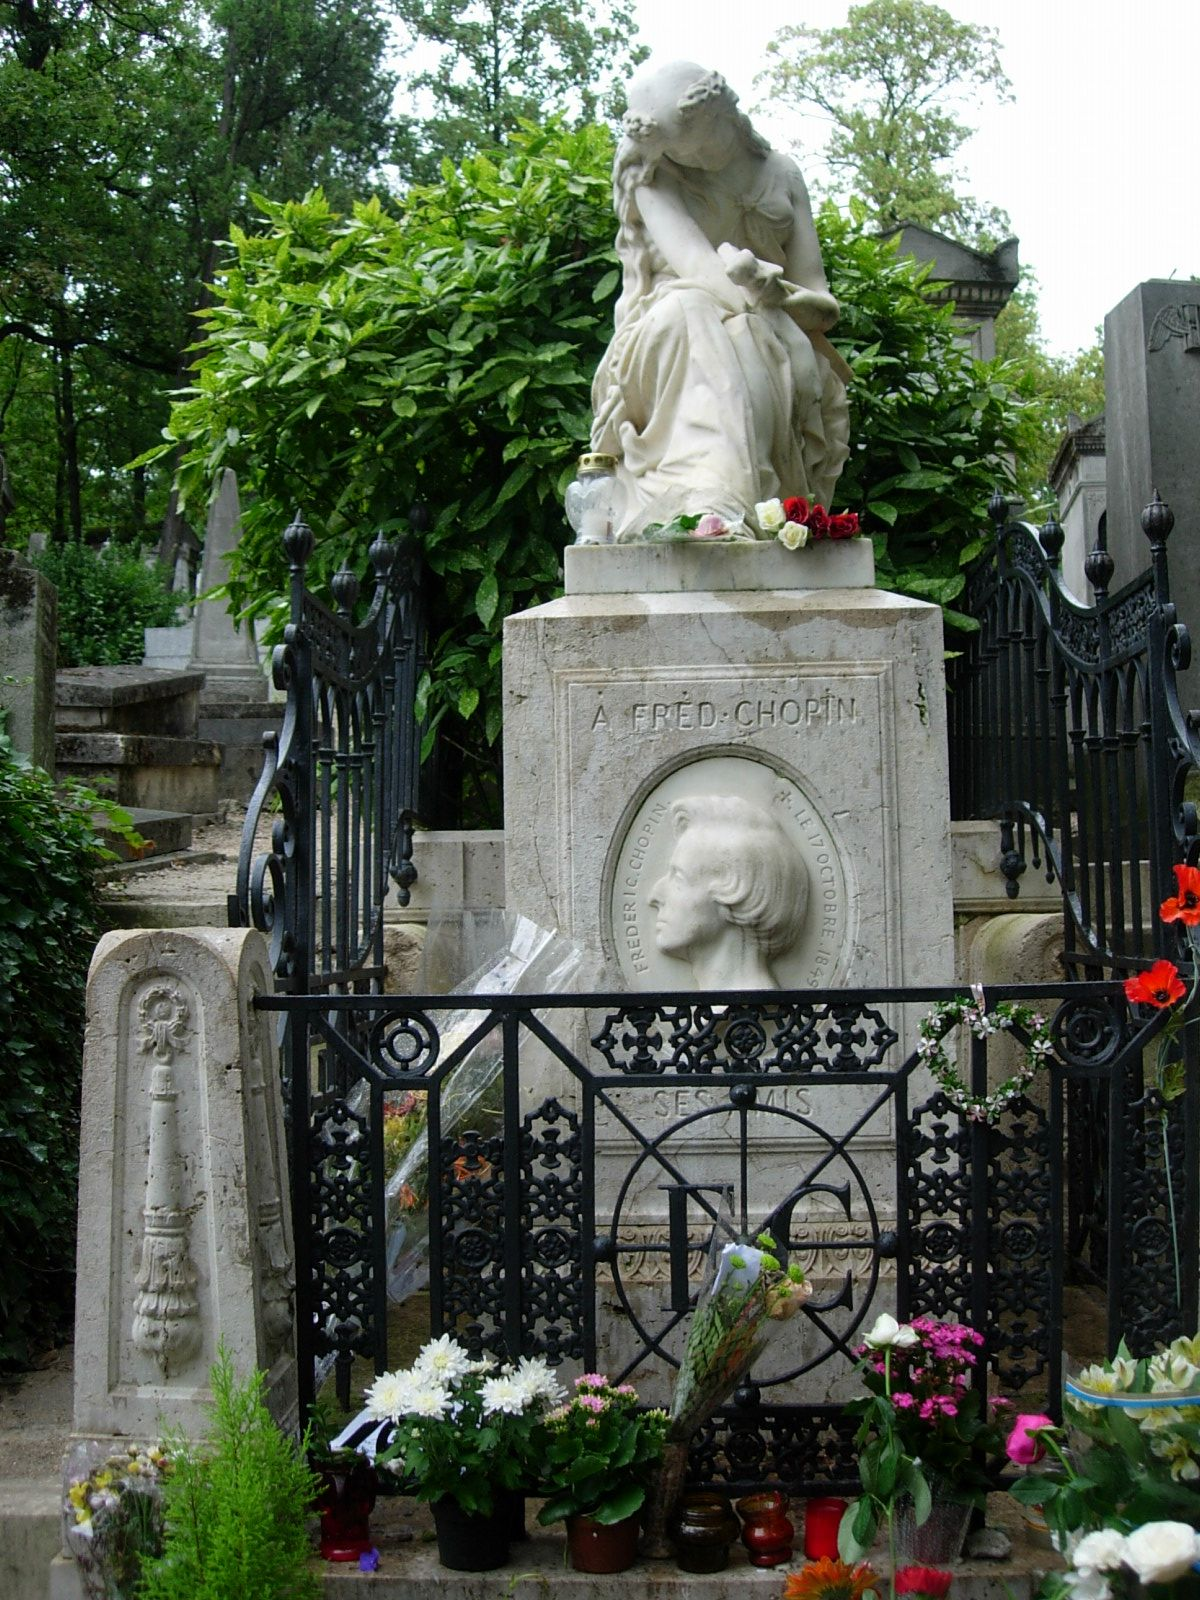 The grave of Frederick Chopin at Pere Lachaise Cemetery in